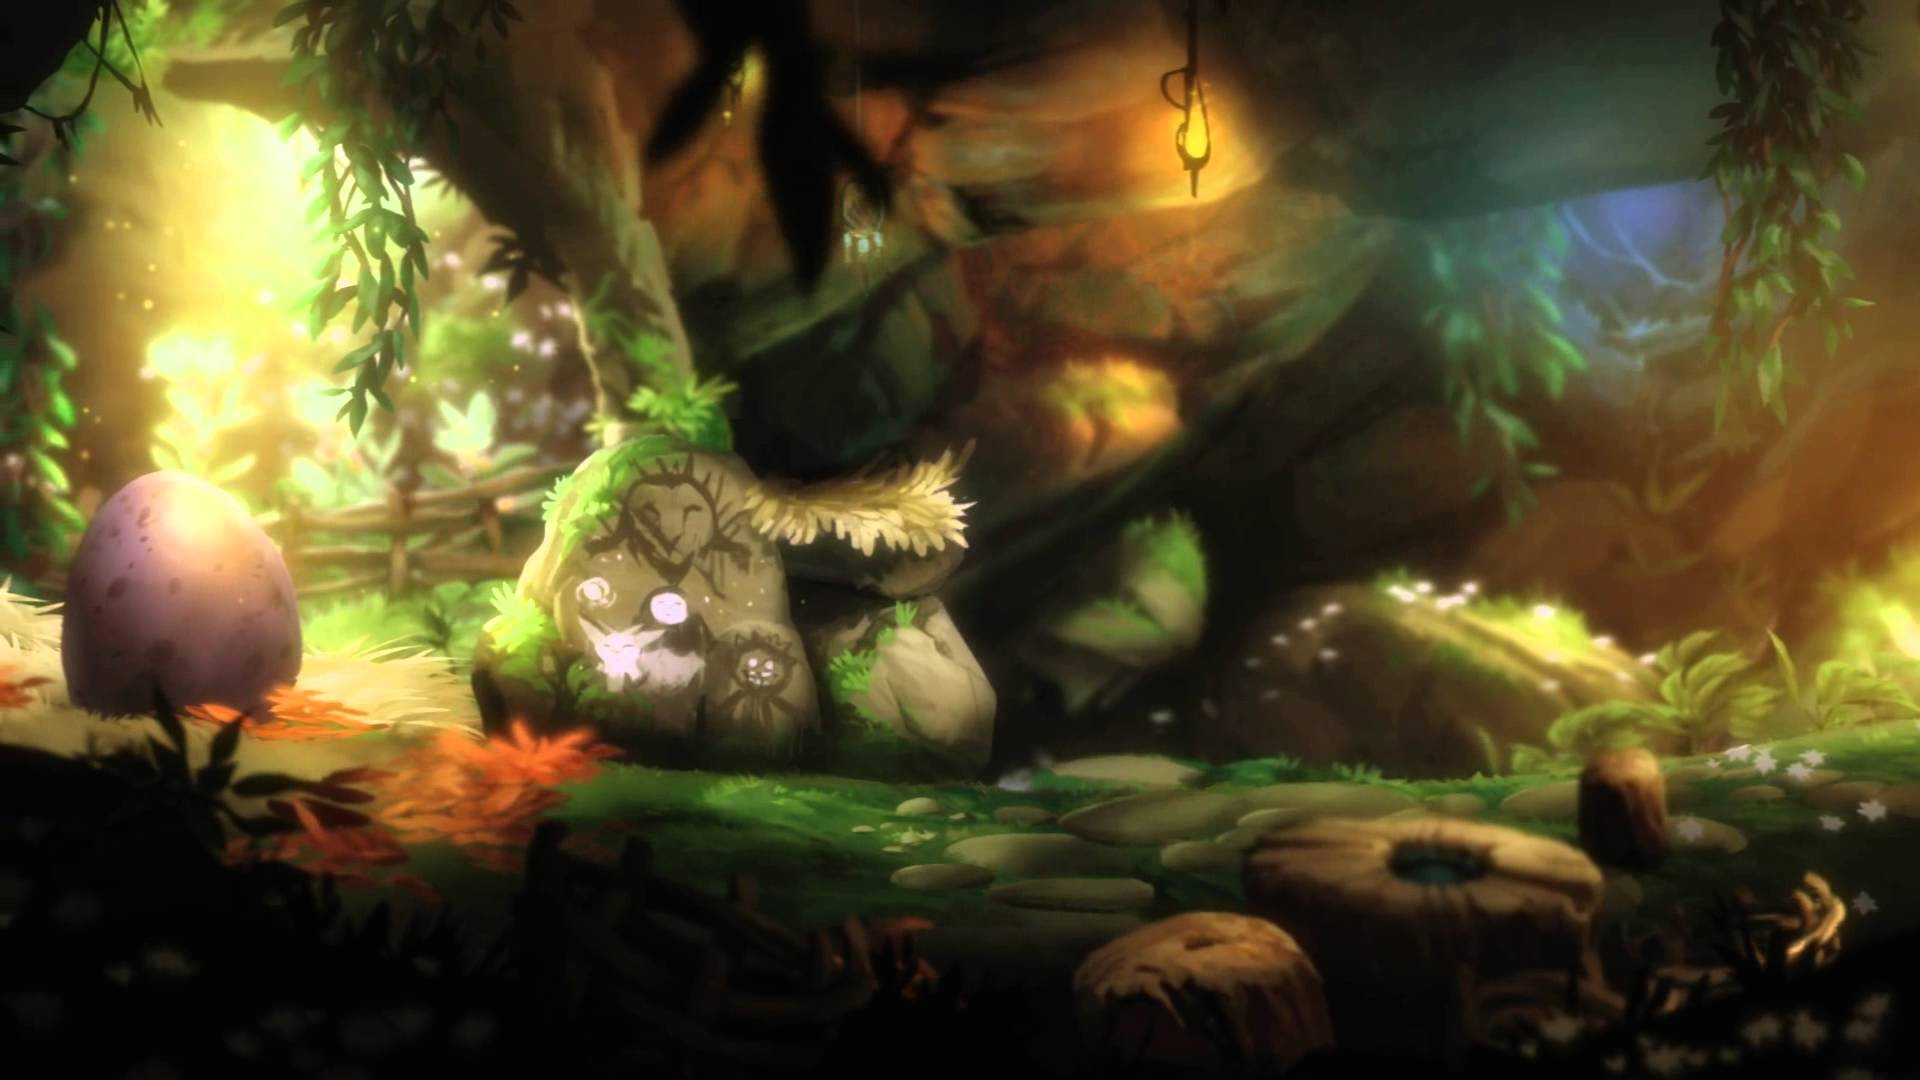 A painting inside Naru's cave, depicting Kuro, Ori, herself and Gumon.